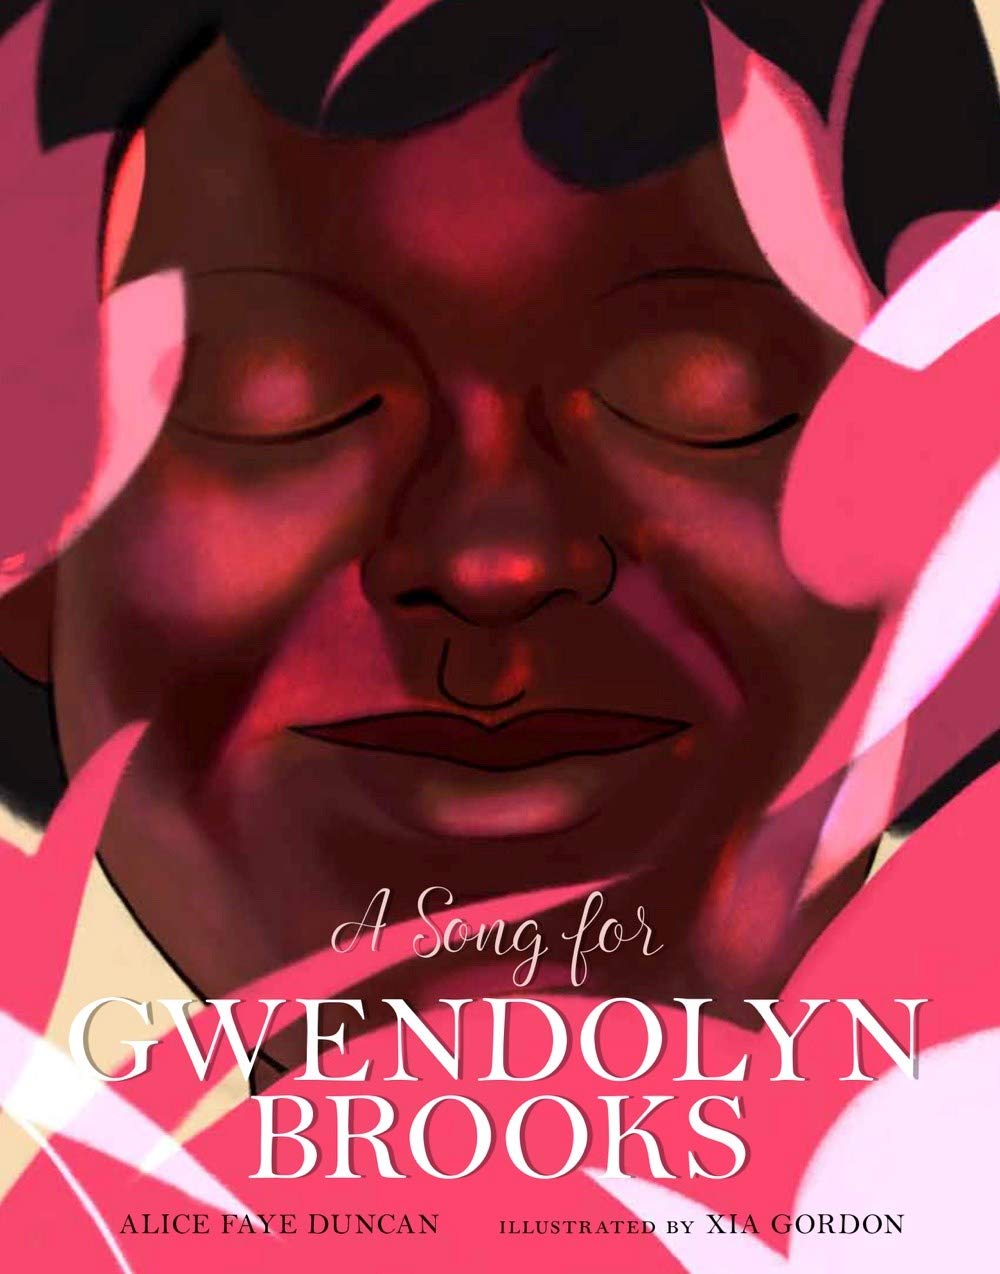 a song for gwendolyn brooks cover image